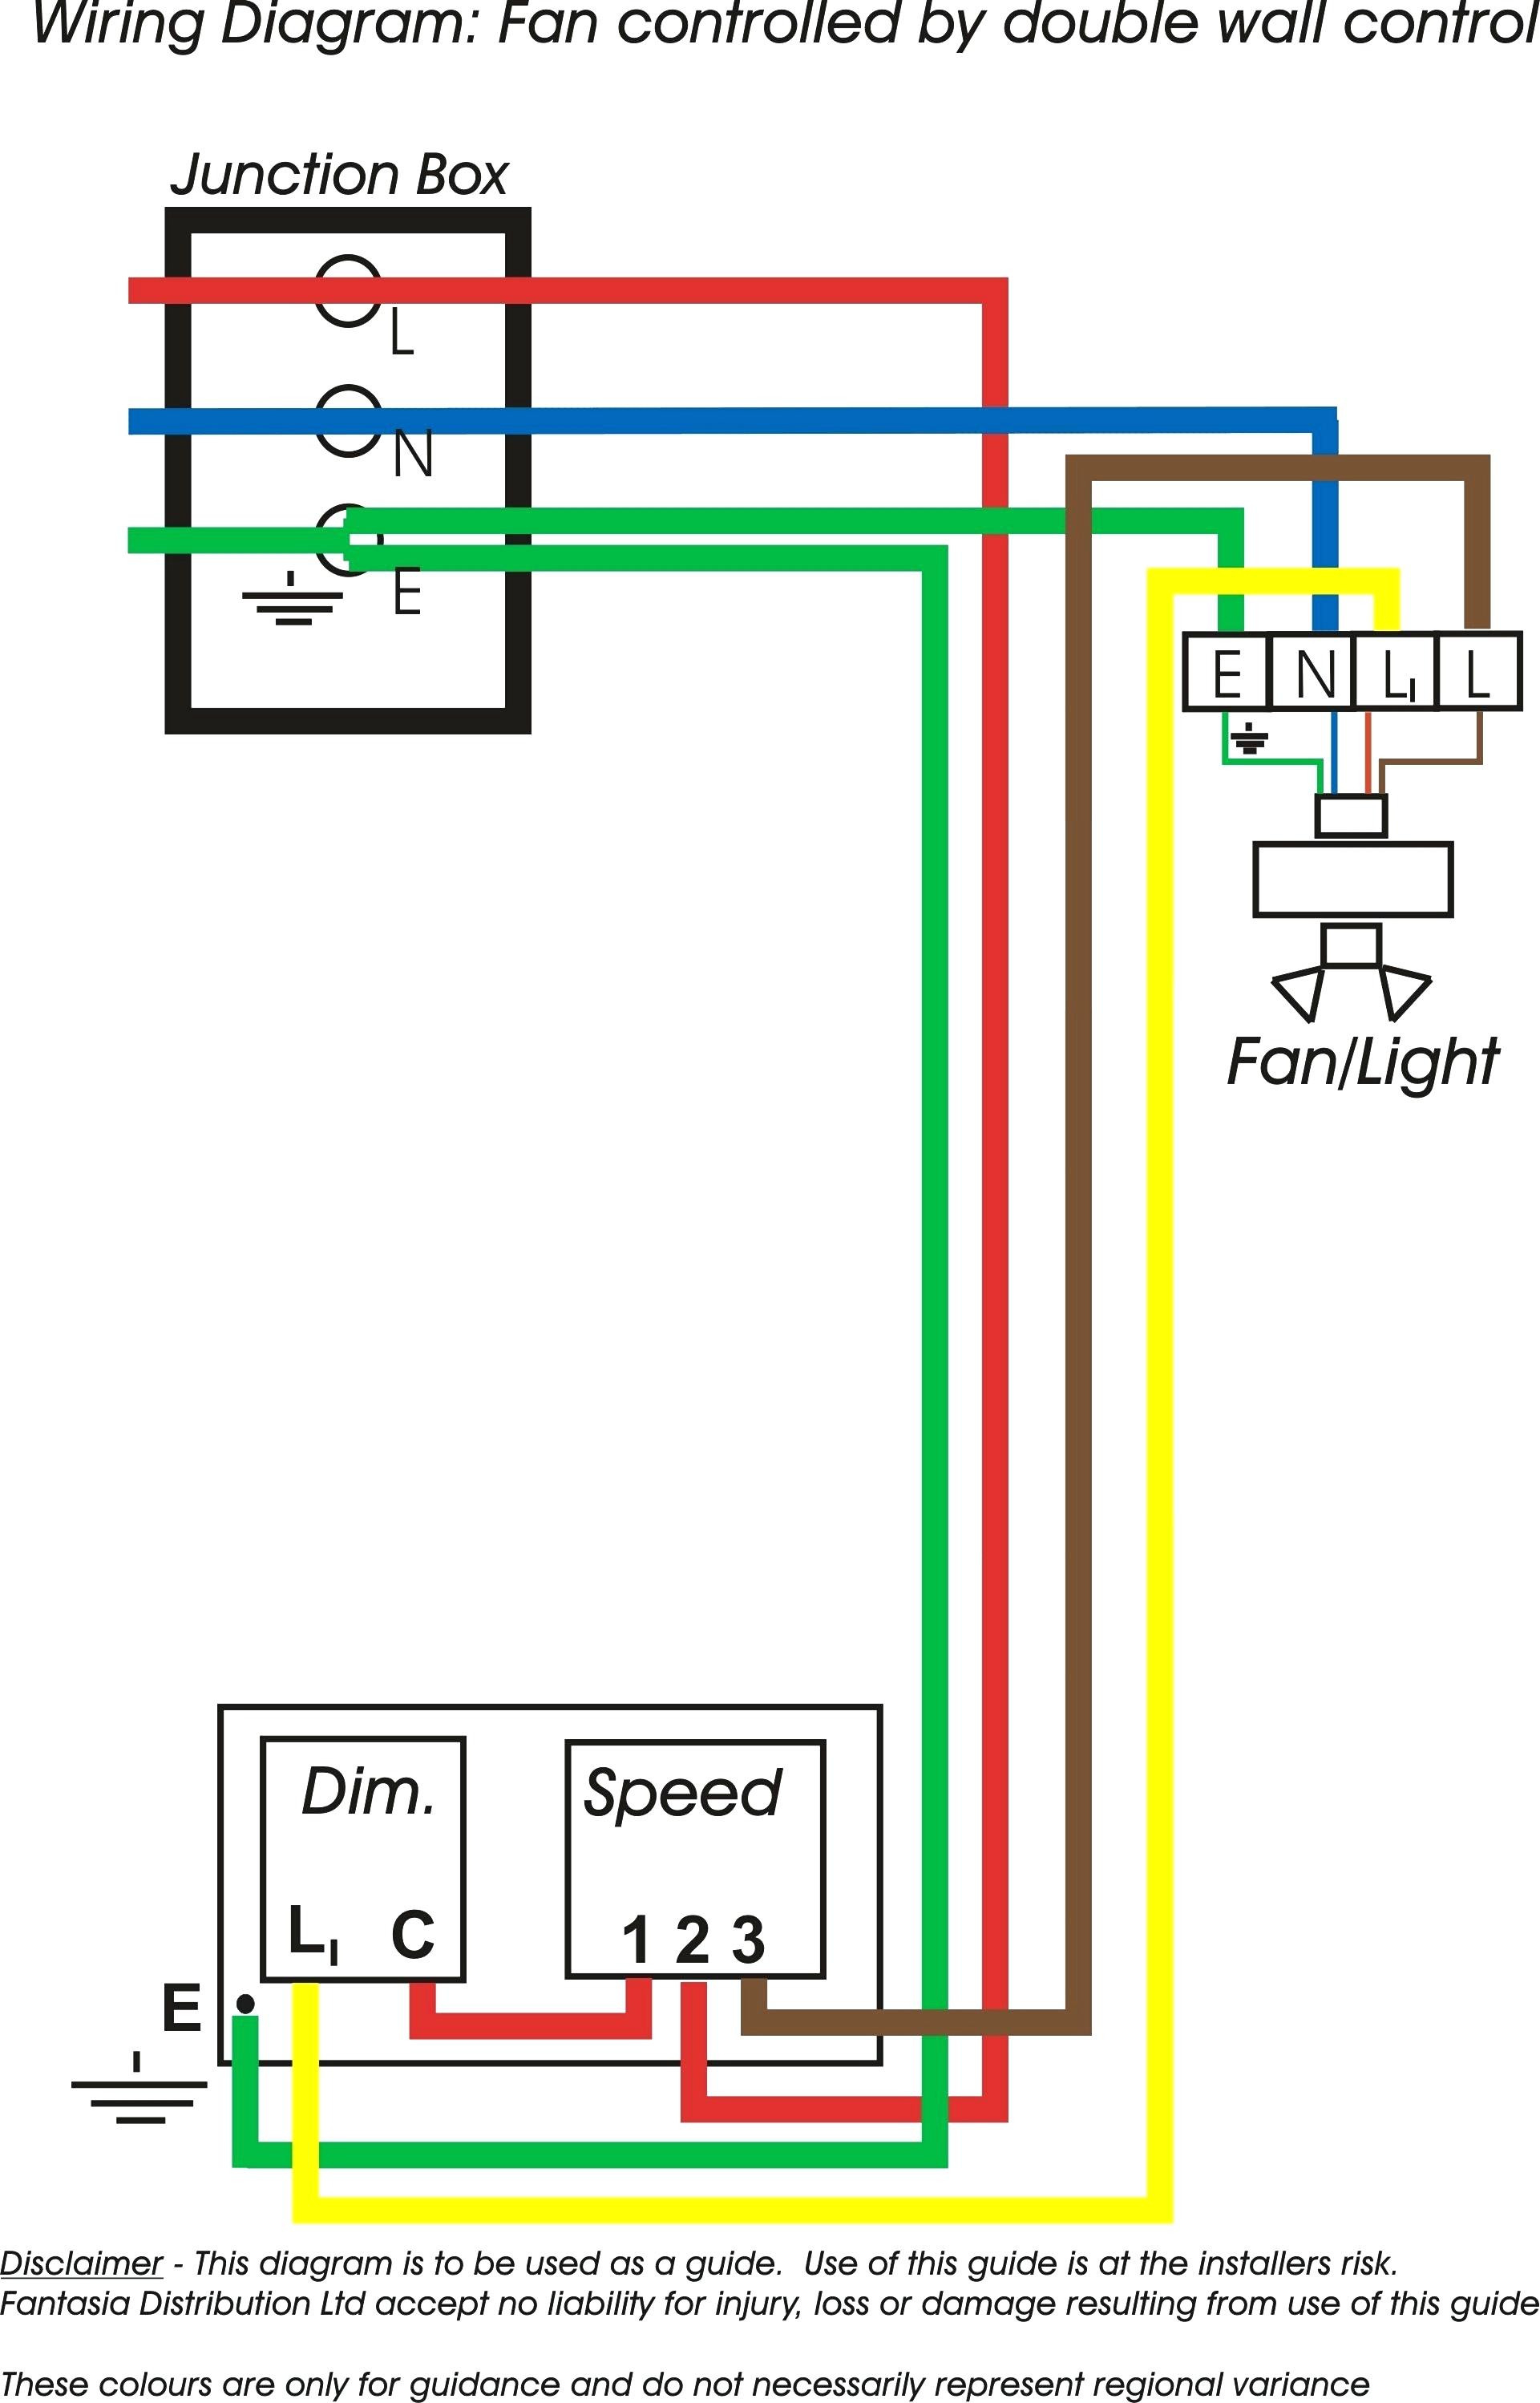 Westinghouse 77021 Wiring Diagram from wholefoodsonabudget.com